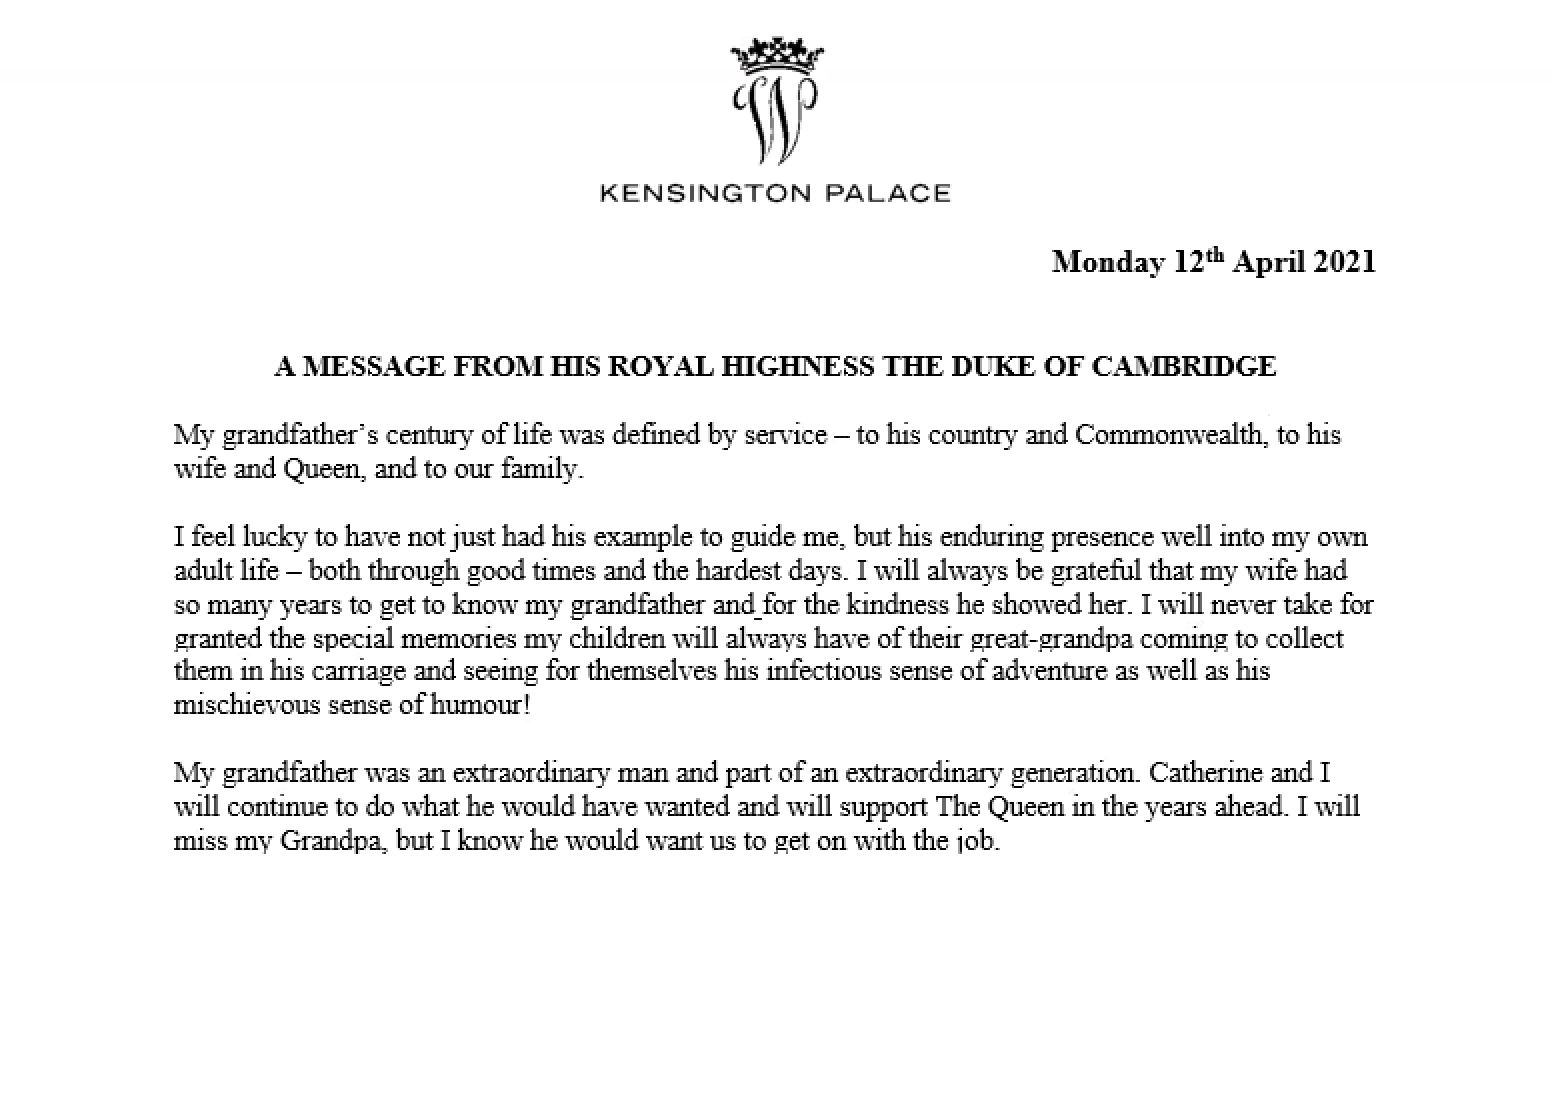 The Duke of Cambridge paid tribute to his Grand Father